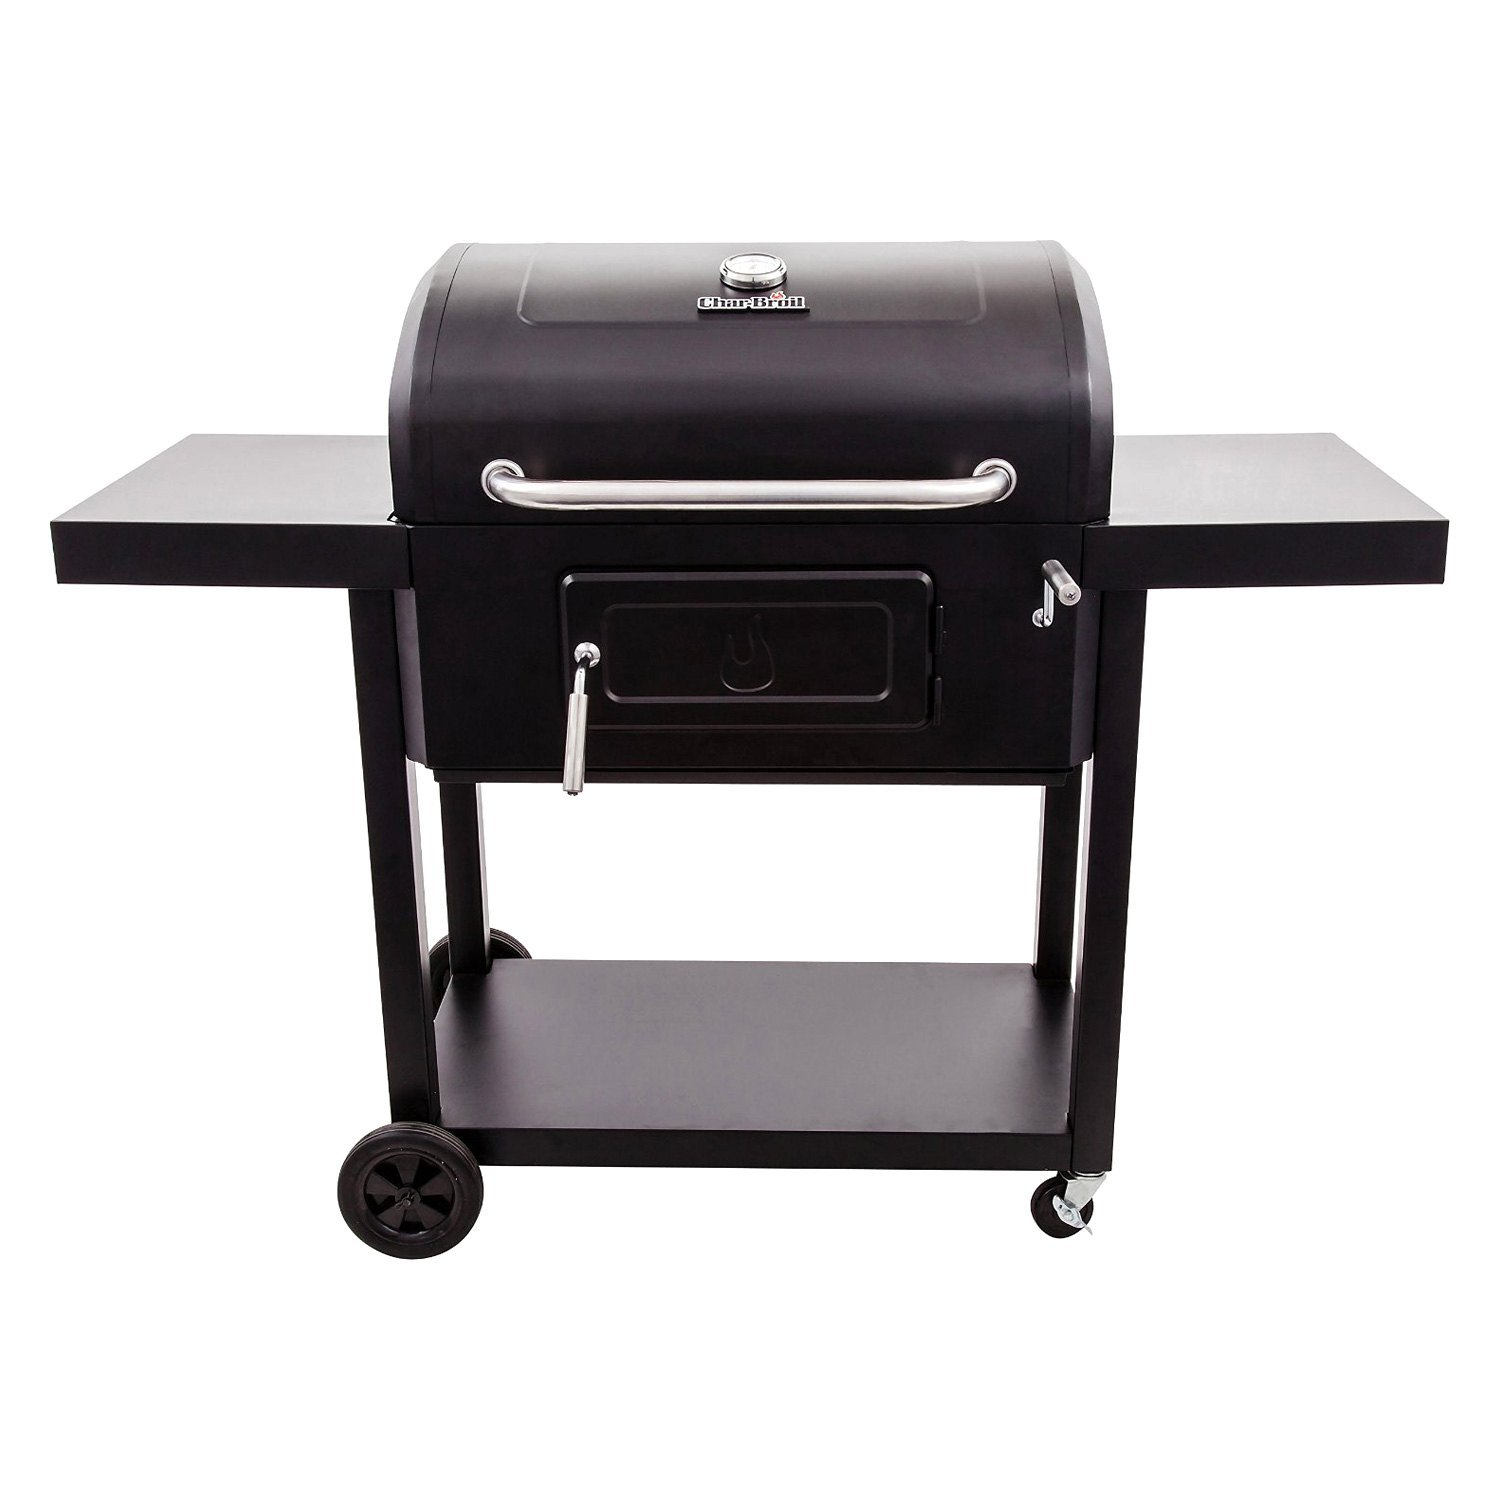 Char Broil 174 16302039 780 Series Charcoal Grill